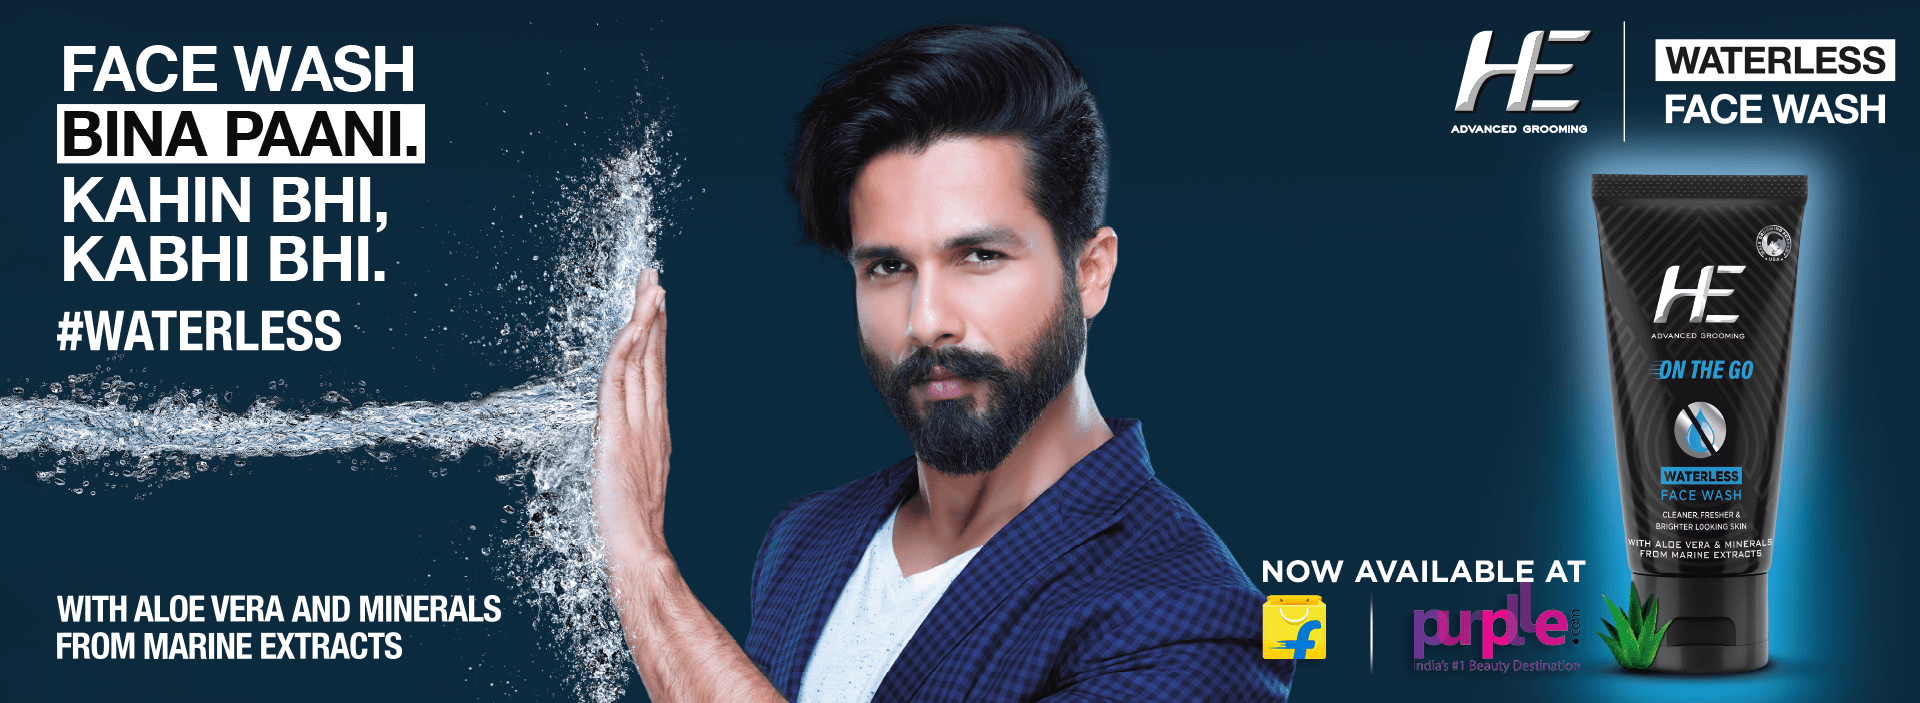 shahid kapoor he waterless facewash